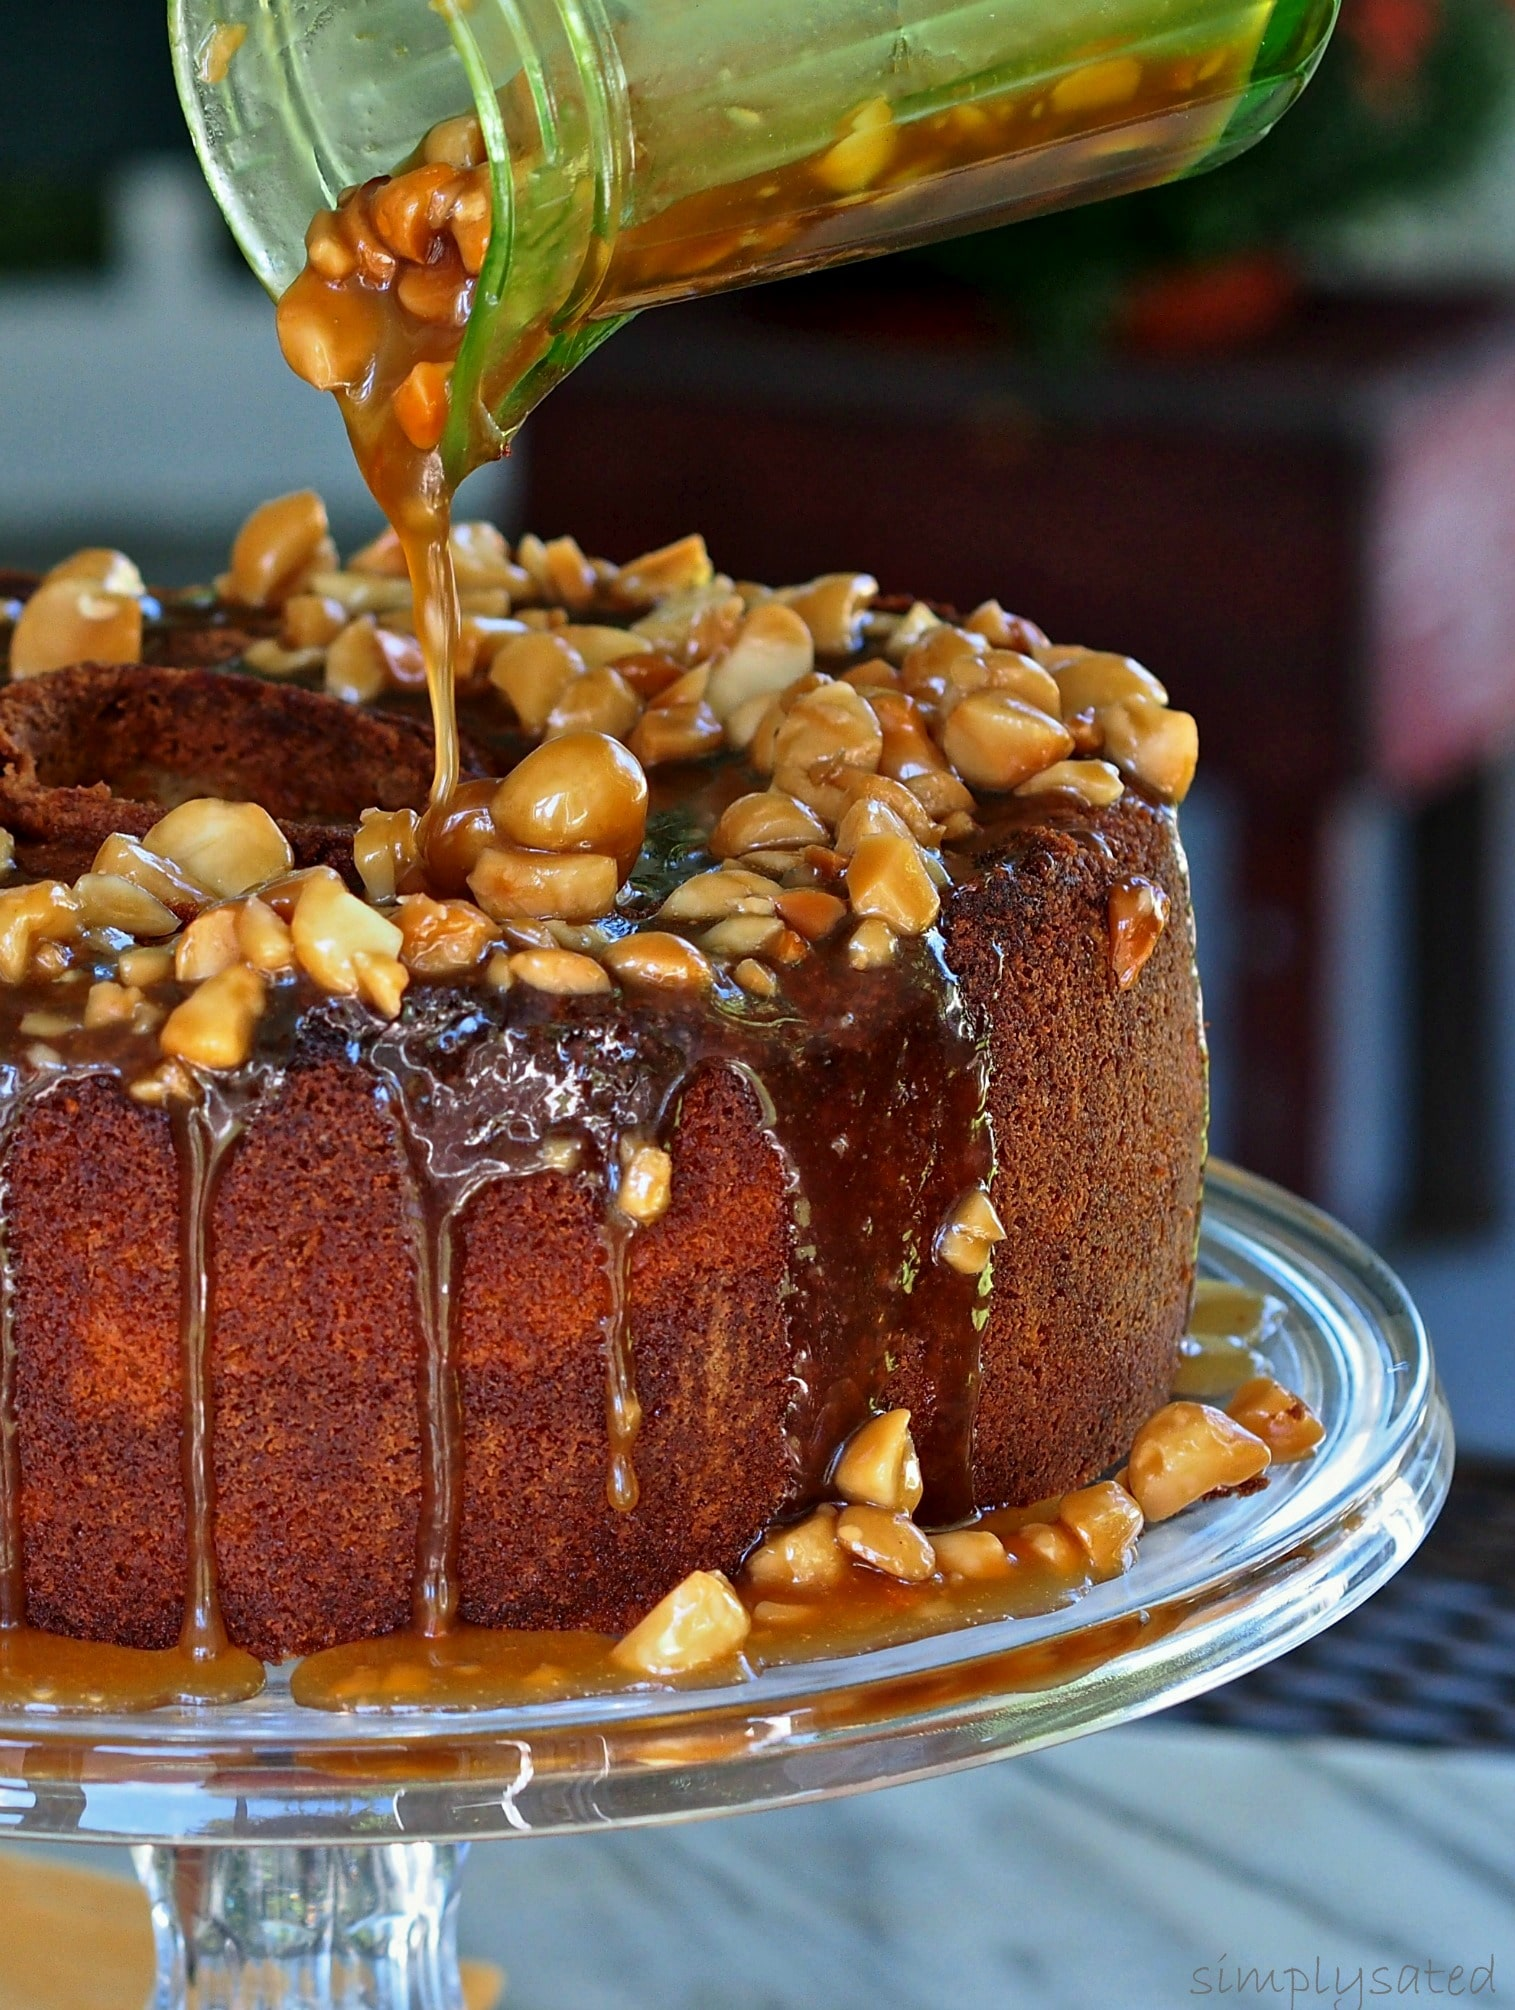 Caramel Macadamia Pound Cake - Brown sugar pound cake topped with caramel and toasted macadamia sauce - lick-the-plate. simplysated.com